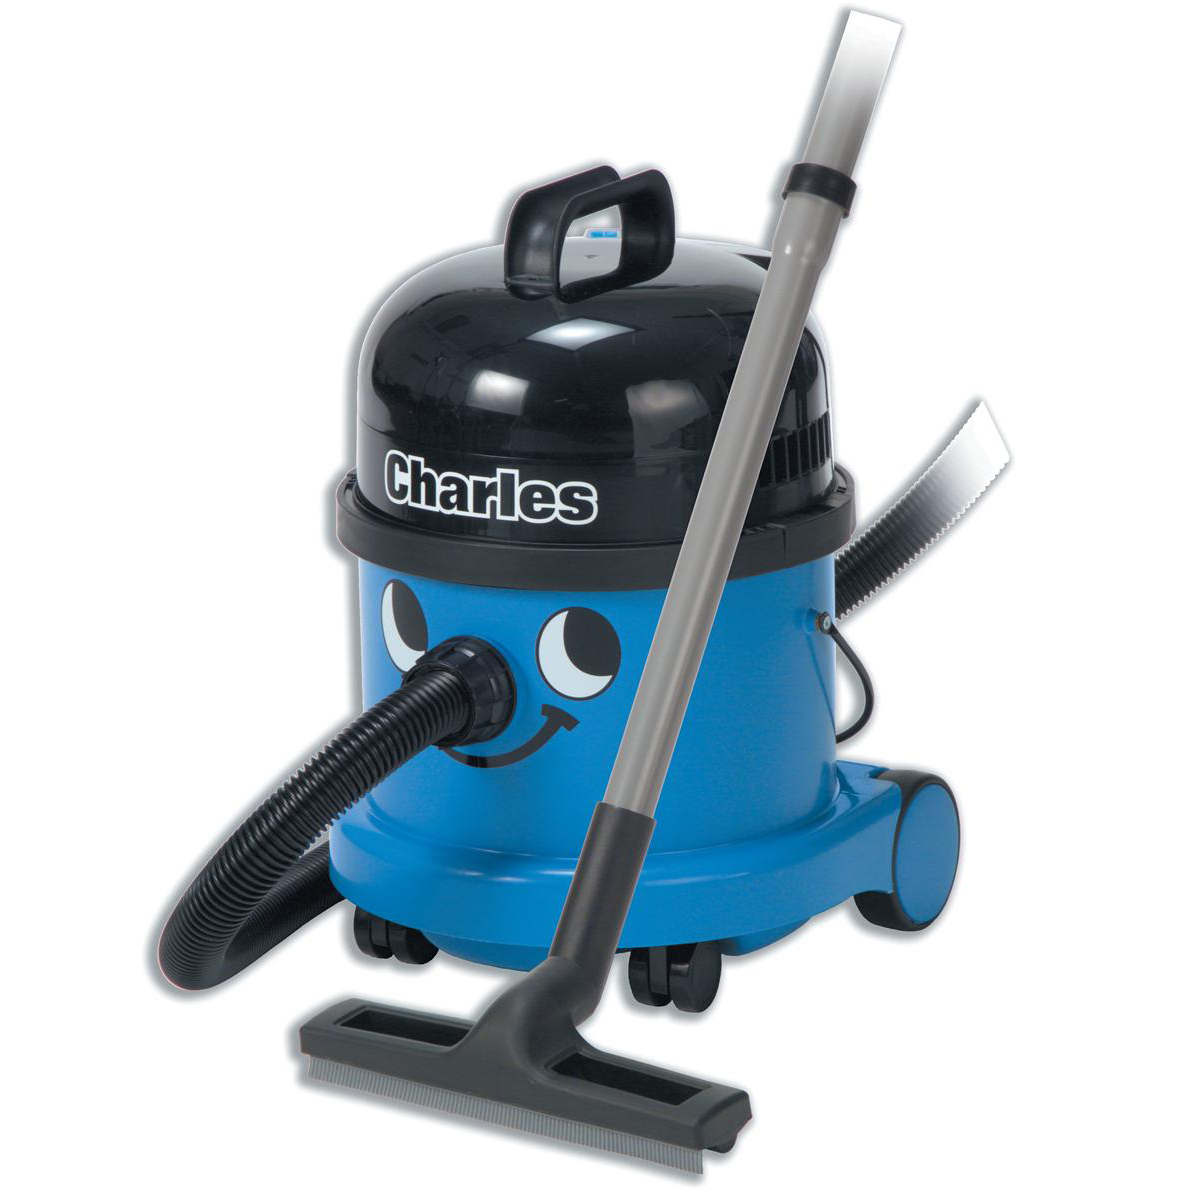 Vacuum Cleaners & Accessories Numatic Charles Vacuum Cleaner Wet & Dry 1060W 15L Dry 9L Wet 9Kg W360xD370xH510mm Blue Ref 824615